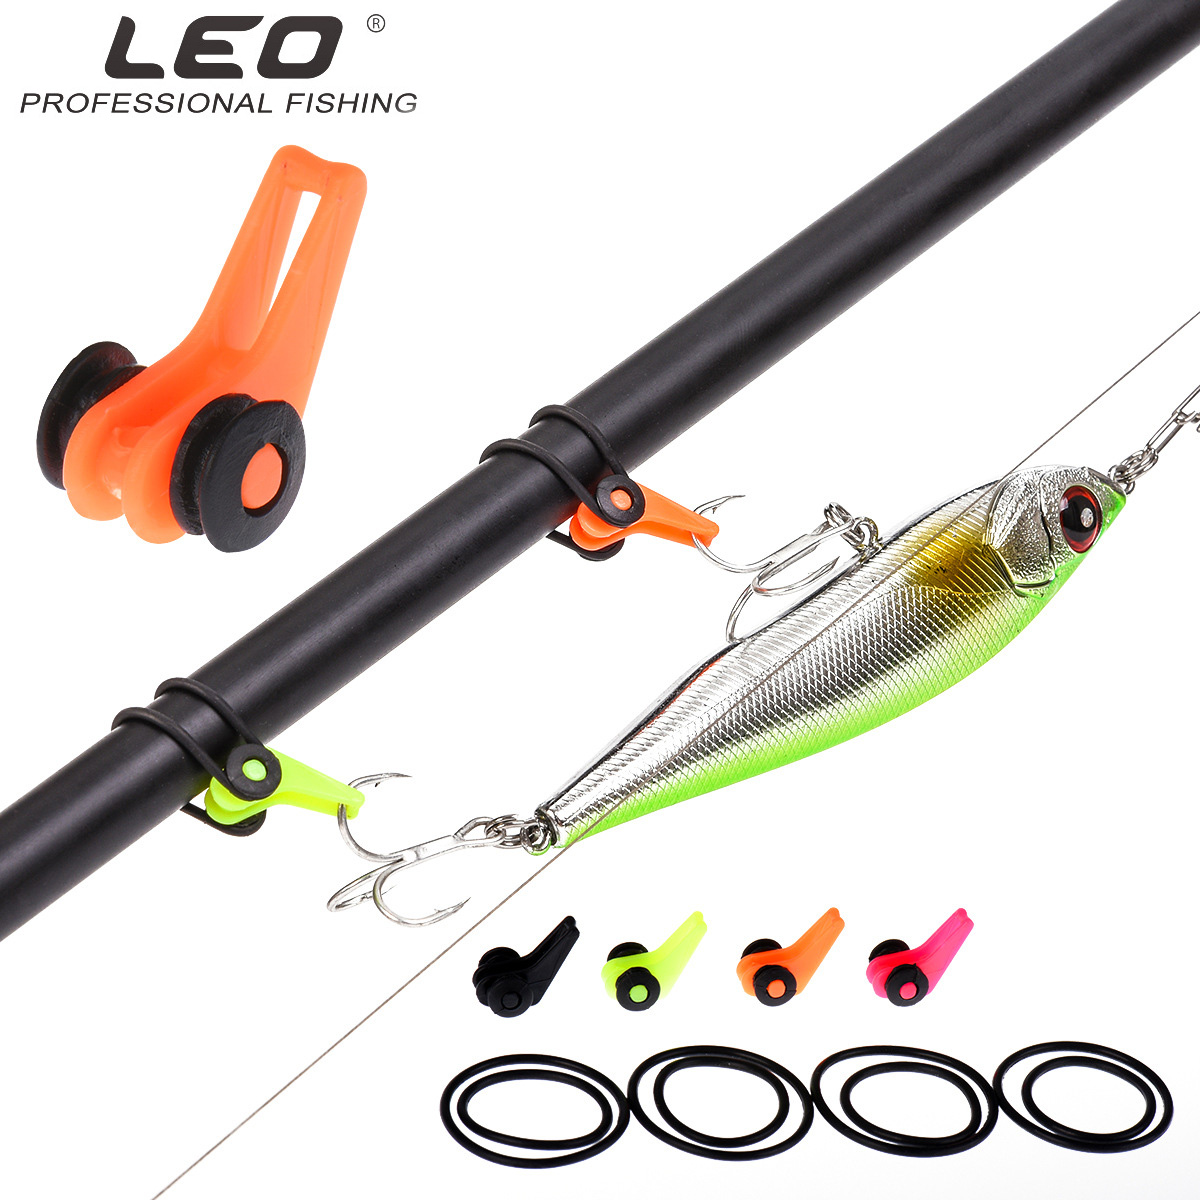 LEO Fishing Hook Secure Keeper Holder 27851 Lure Hang Device Fishing Tackle Pesca Silicone Ring Black Orange Pink Green